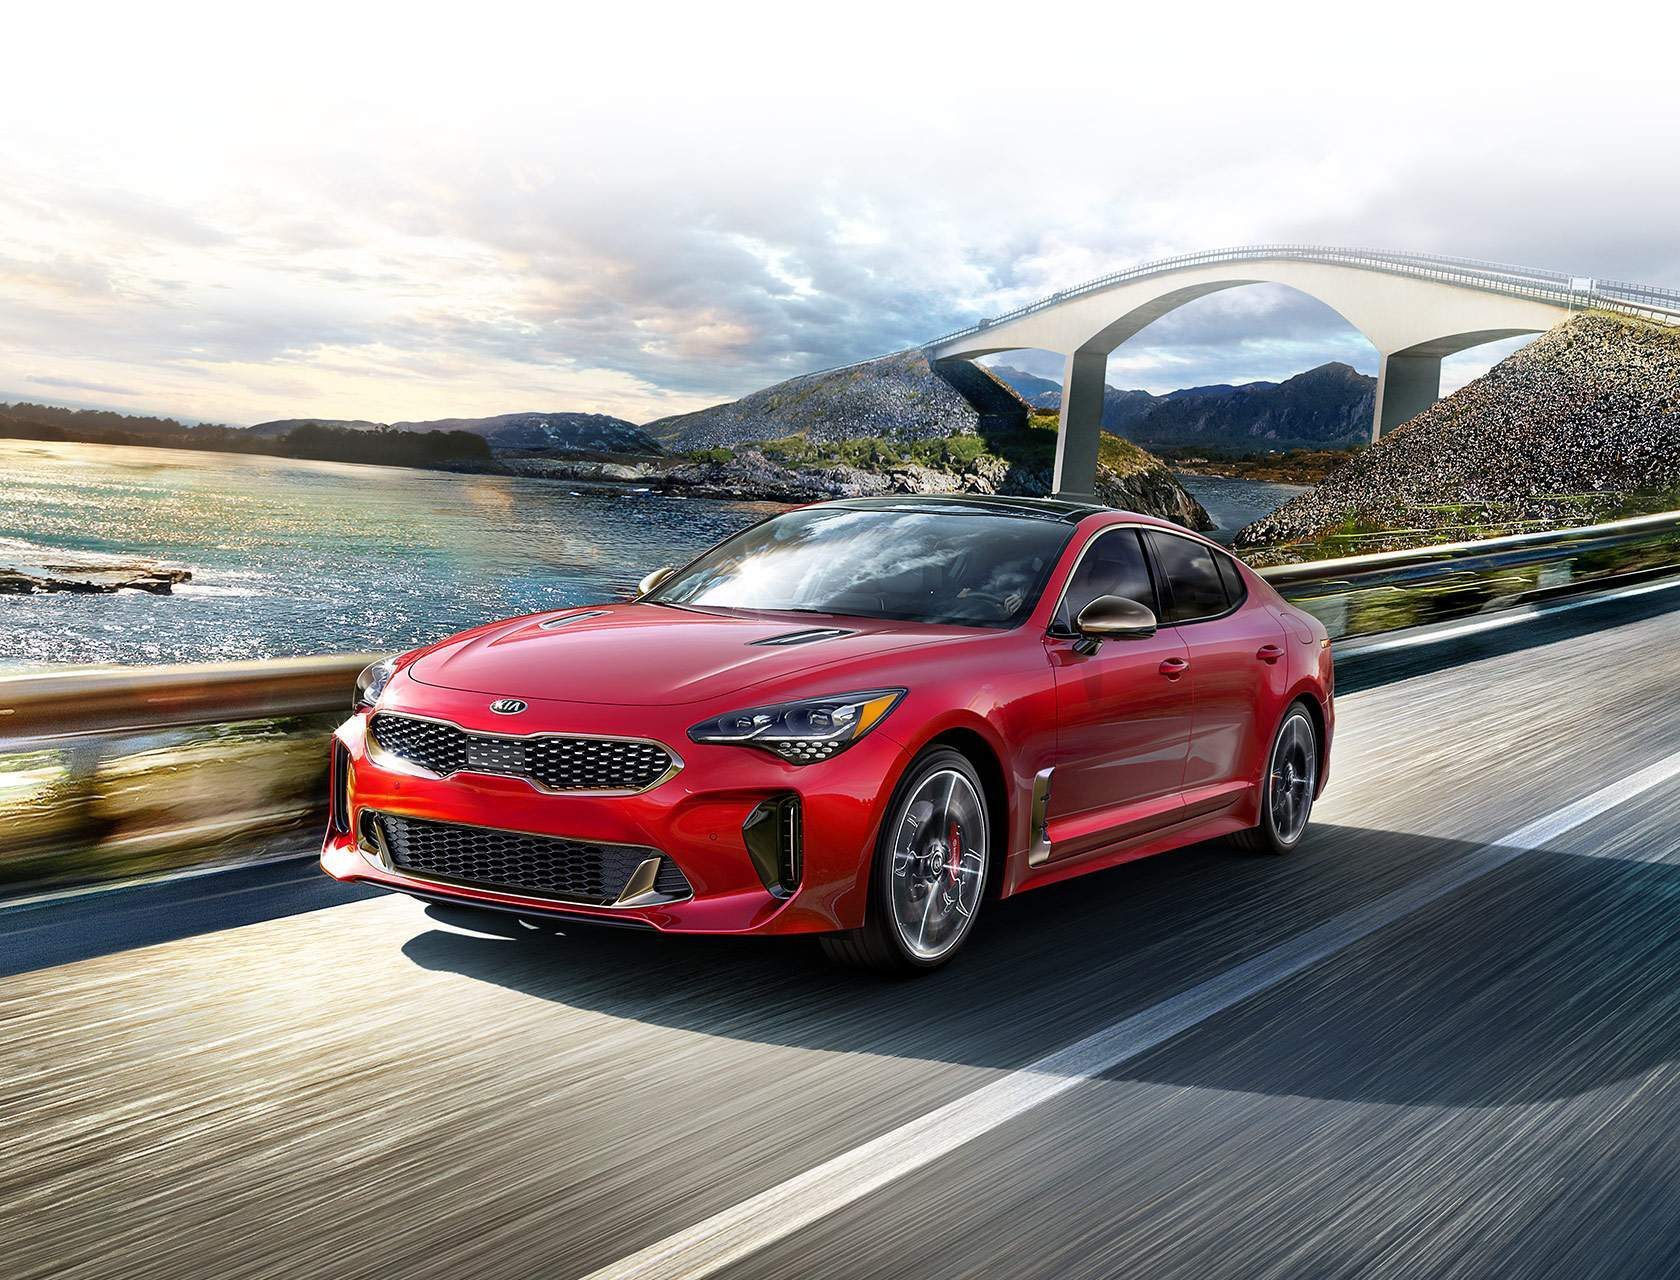 2018 Kia Stinger in Crystal River, FL